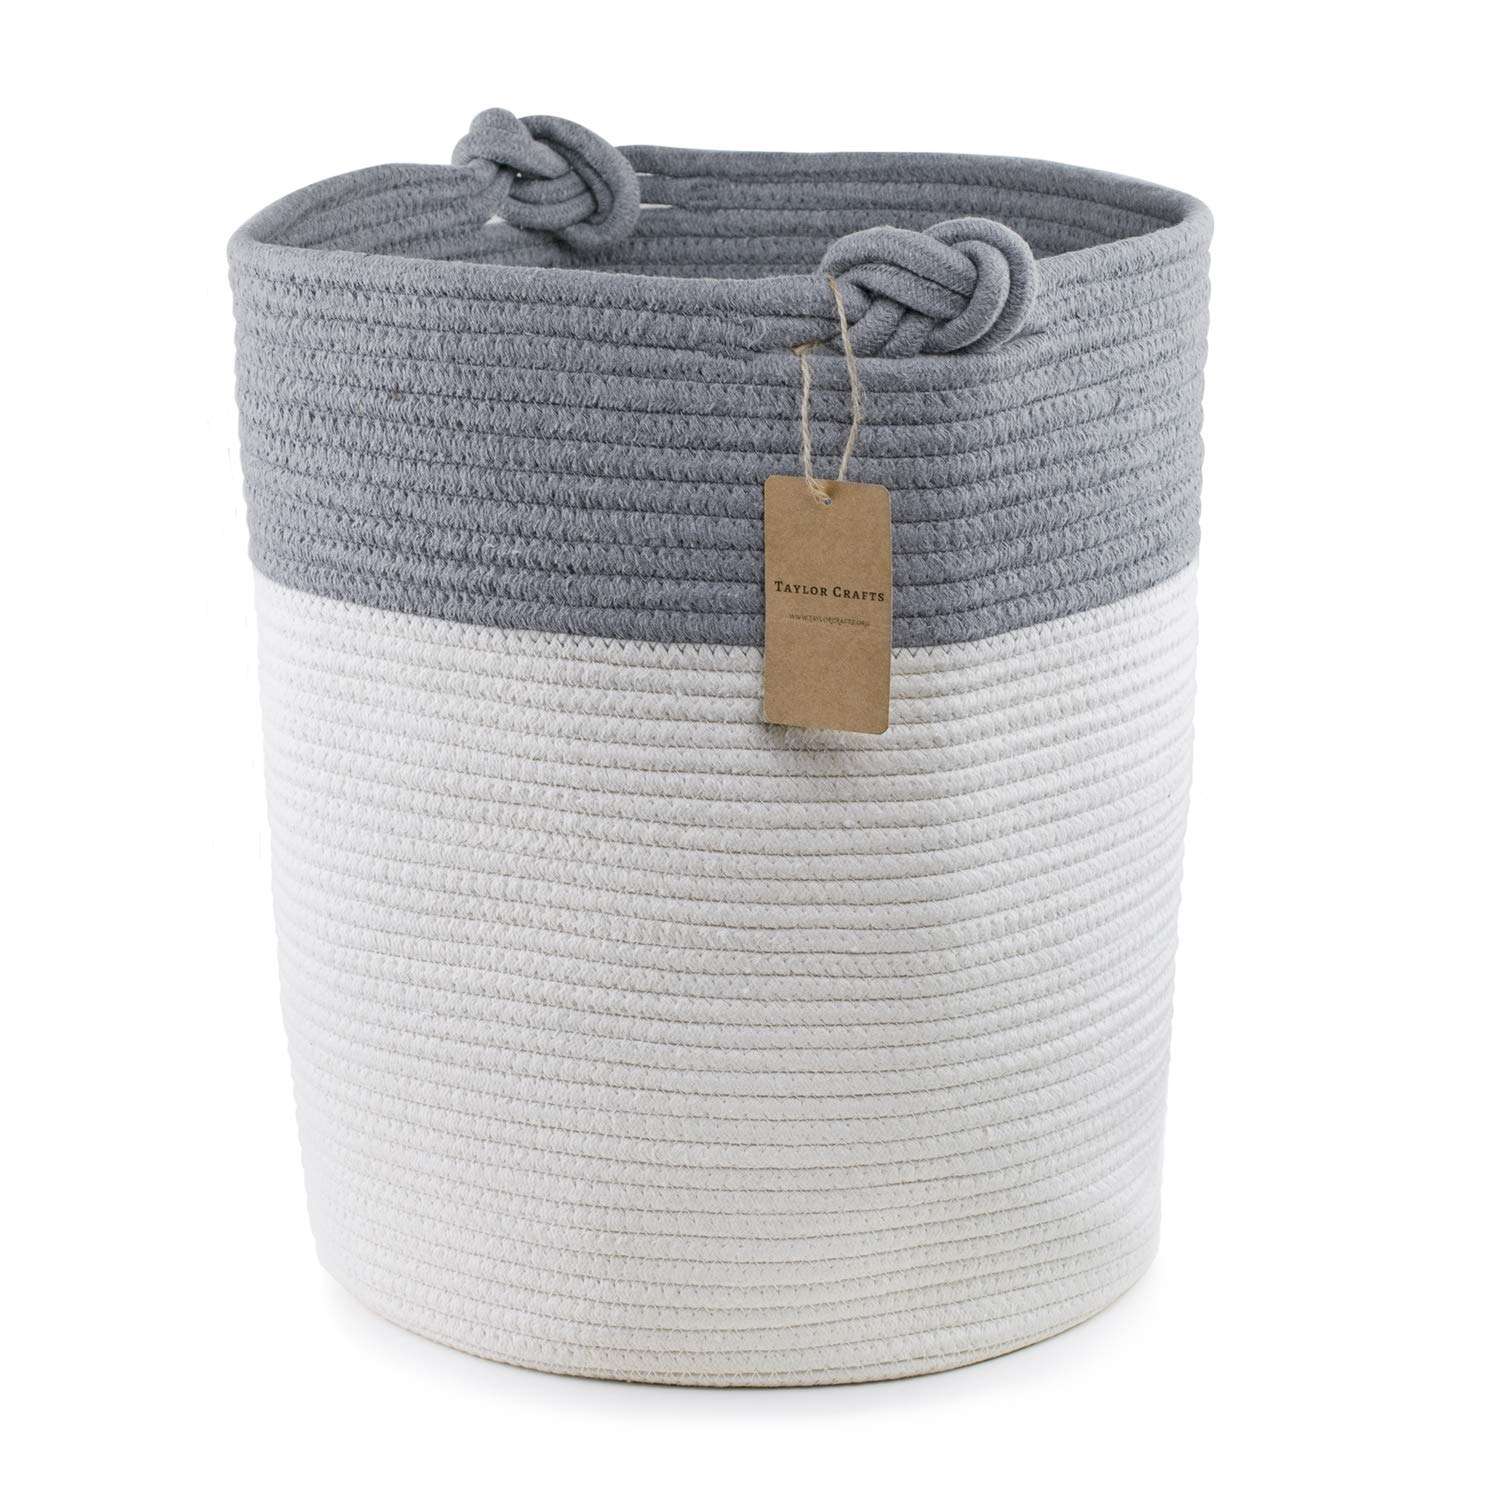 Extra Large Cotton Rope Basket. 18inx15in Size - Perfect as a Storage Basket or Laundry Basket, Toy Storage, Blankets Storage.